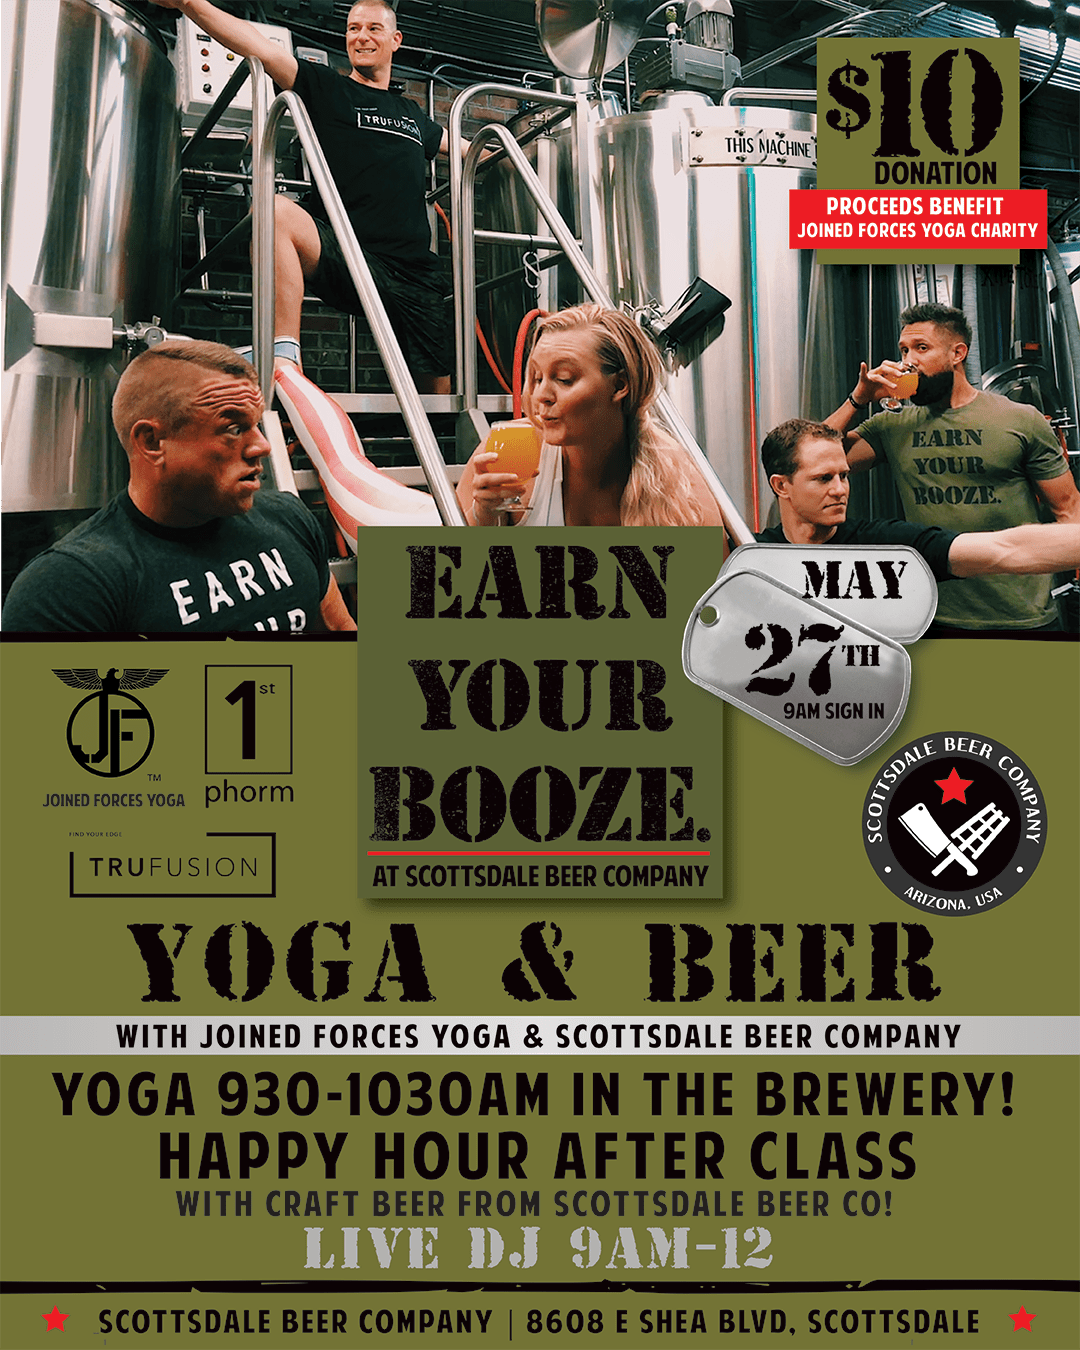 Joined Forces Yoga @ Scottsdale Beer Co (MAY 27)Earn Your Booze